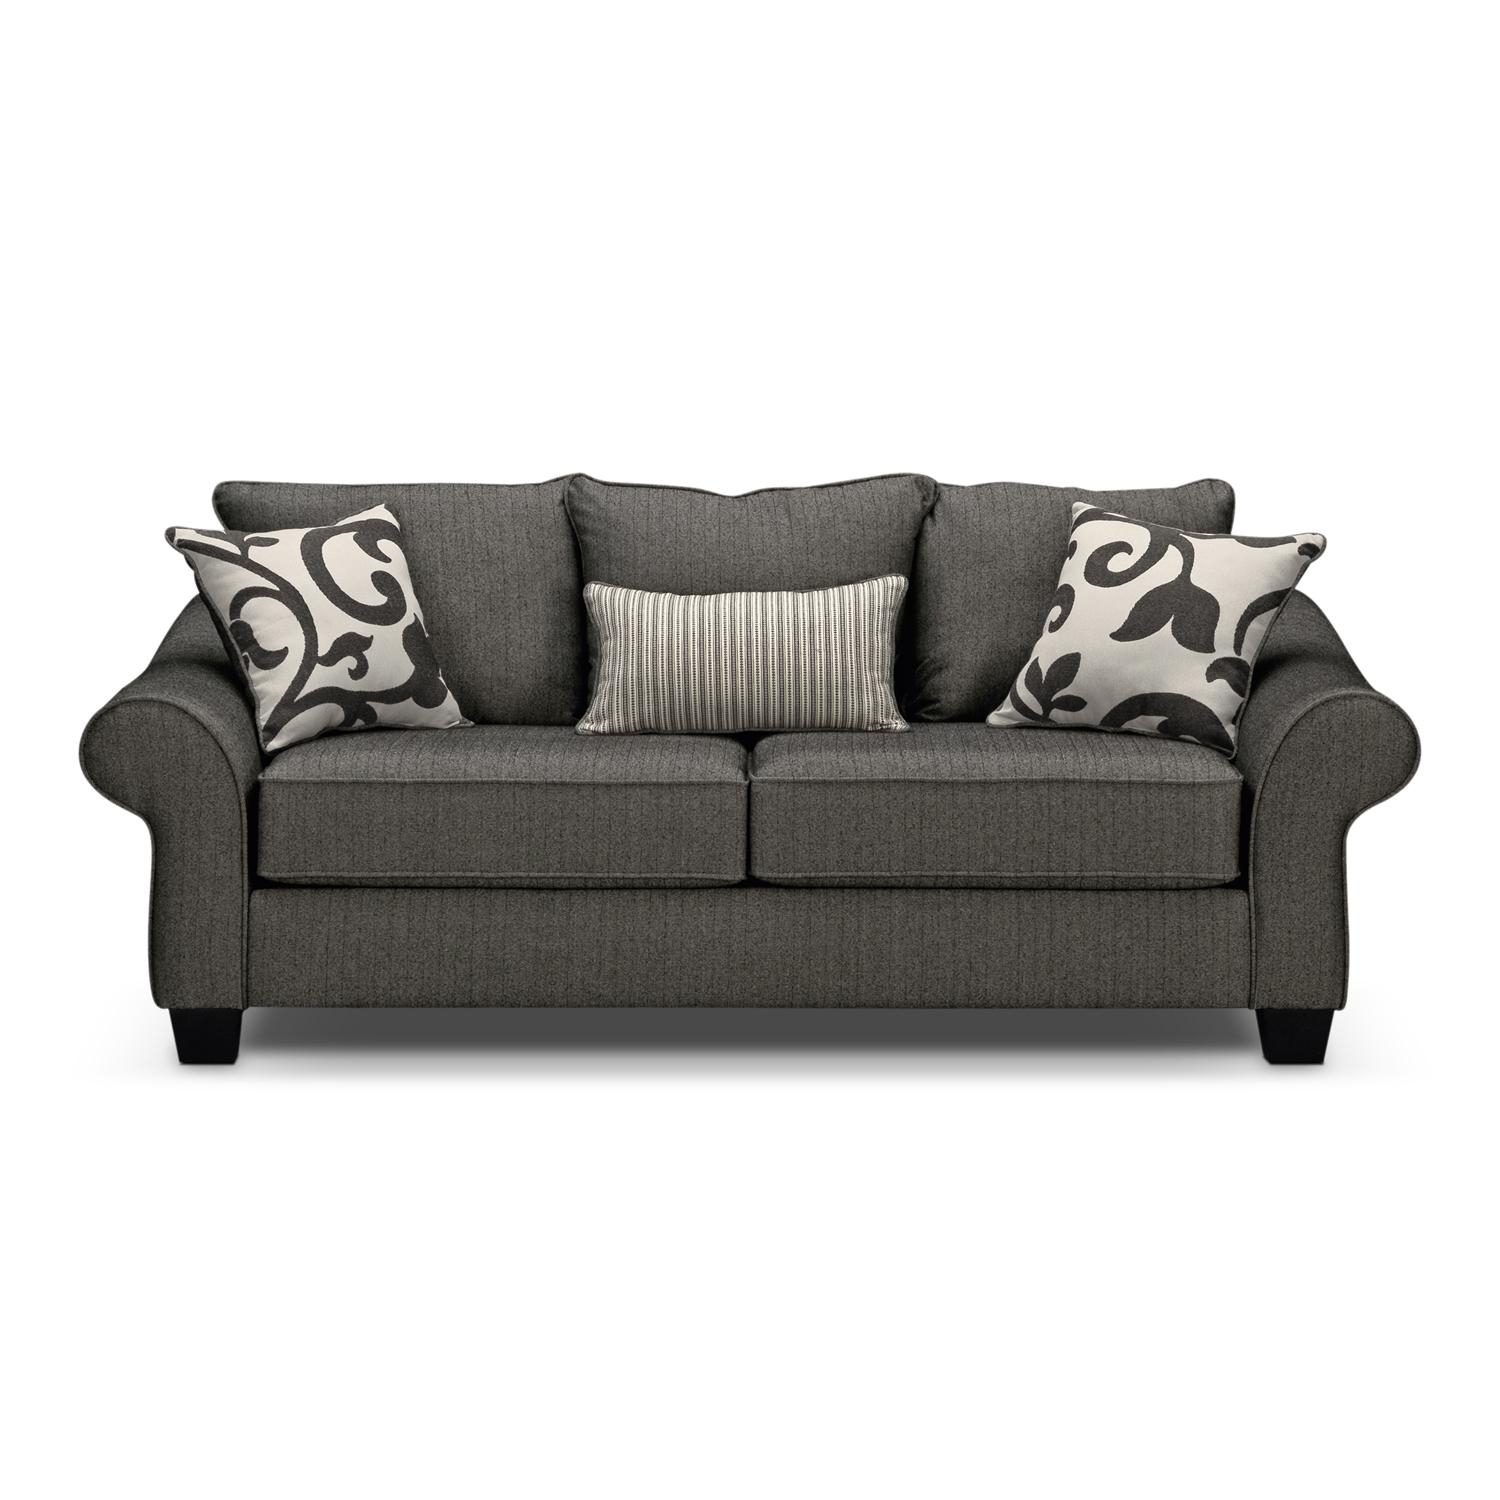 Sofas Center : Value City Furniture Sectional Sleepers Sofa Sale Regarding City Sofa Beds (View 7 of 20)